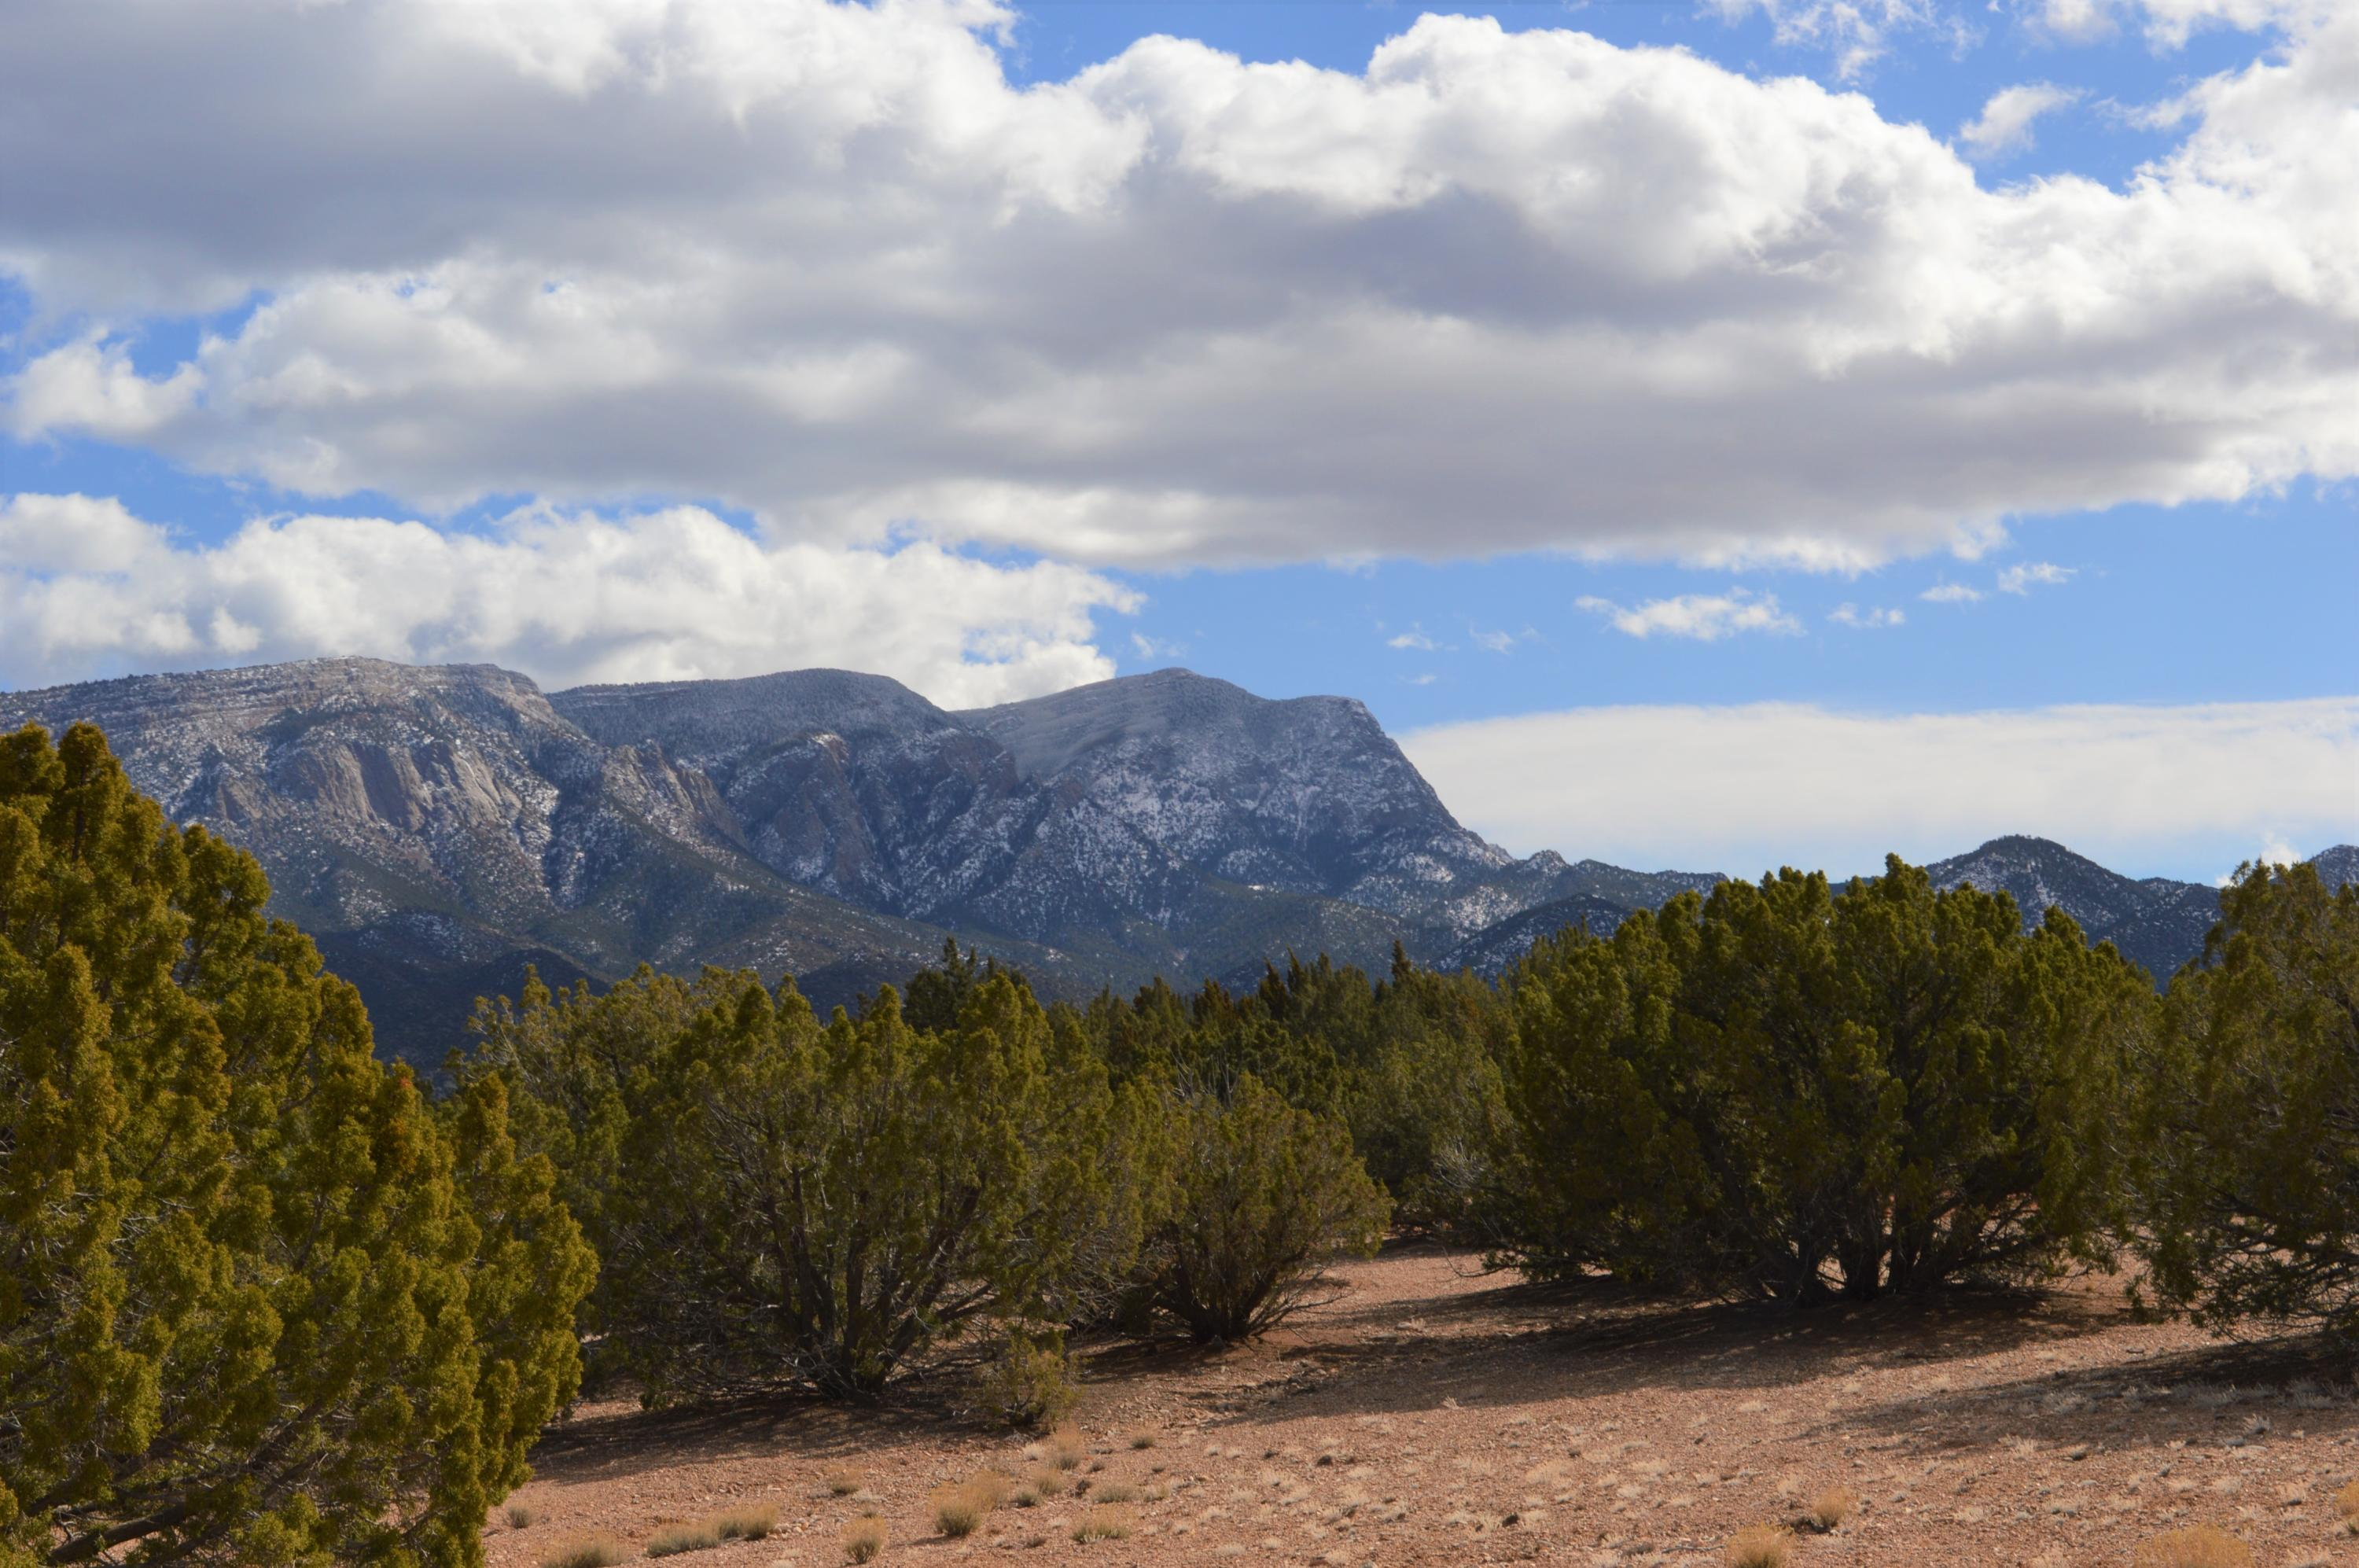 74 ANASAZI TRAILS Road Property Photo - Placitas, NM real estate listing